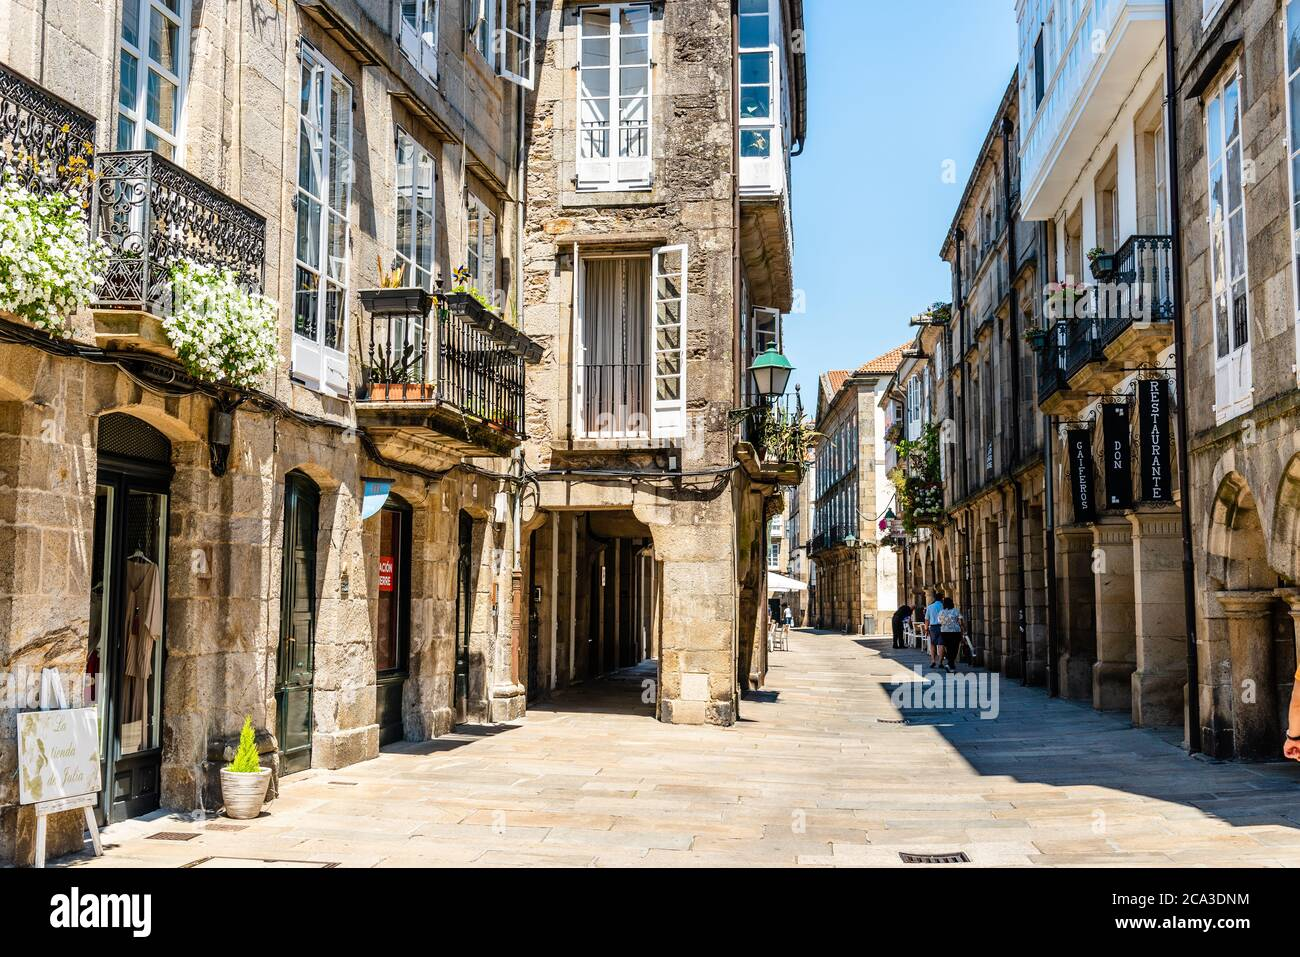 Santiago de Compostela, Spain - July 18, 2020: Old street with arcades in medieval town Stock Photo